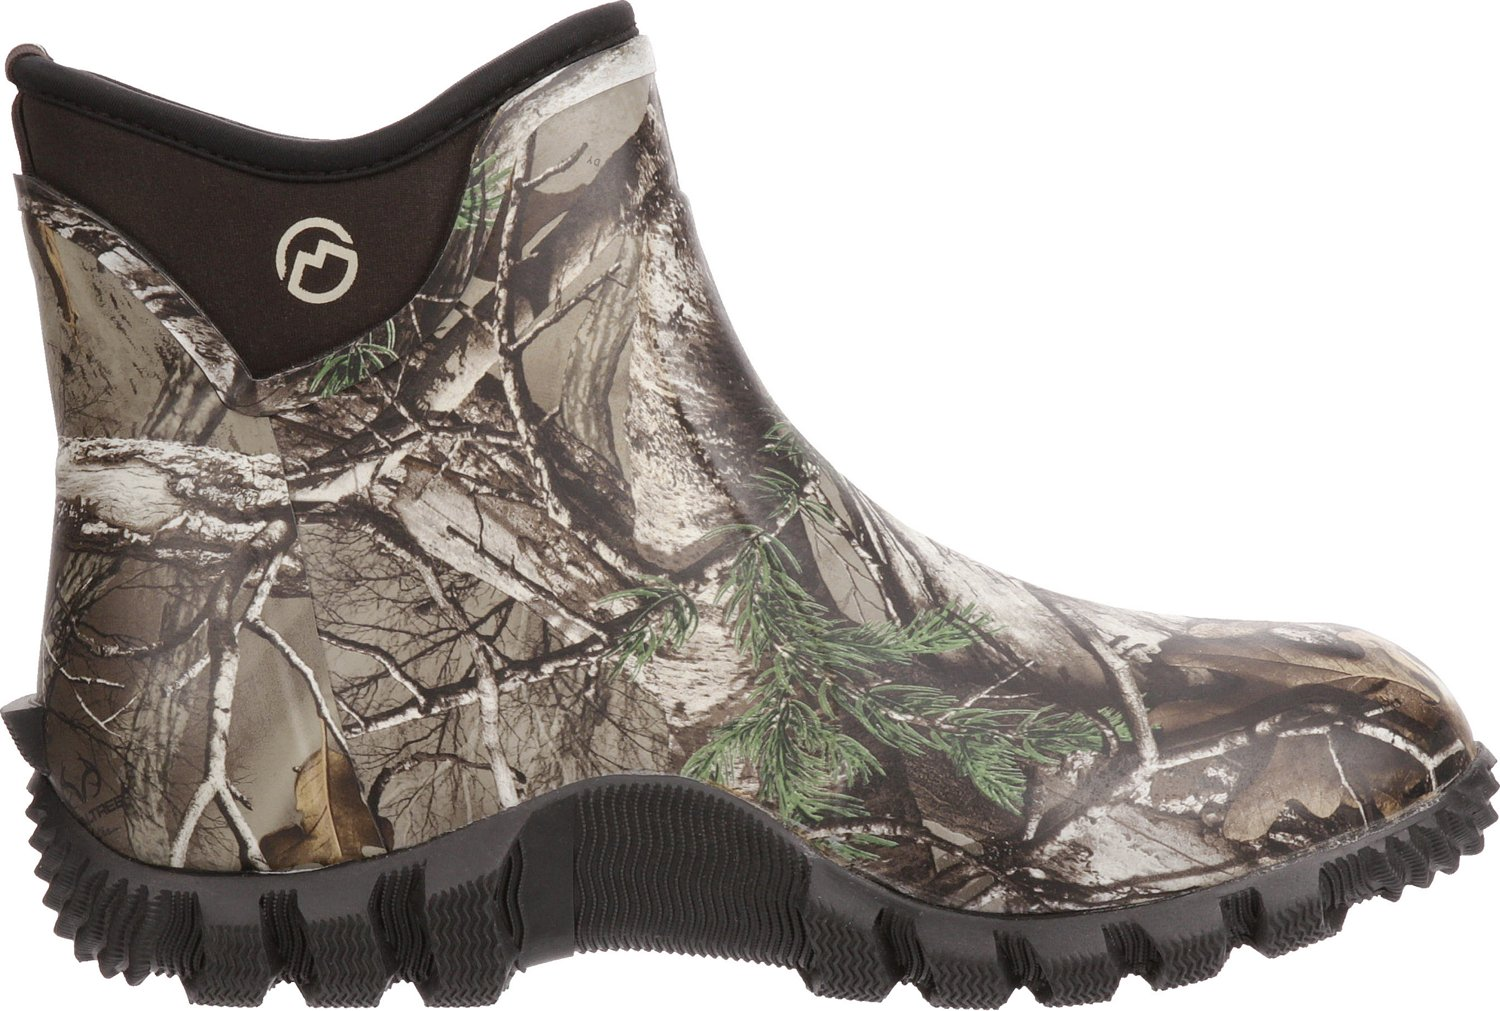 a37b247e90e48 Magellan Outdoors Men's Puddler Mid IV Hunting Boots | Academy